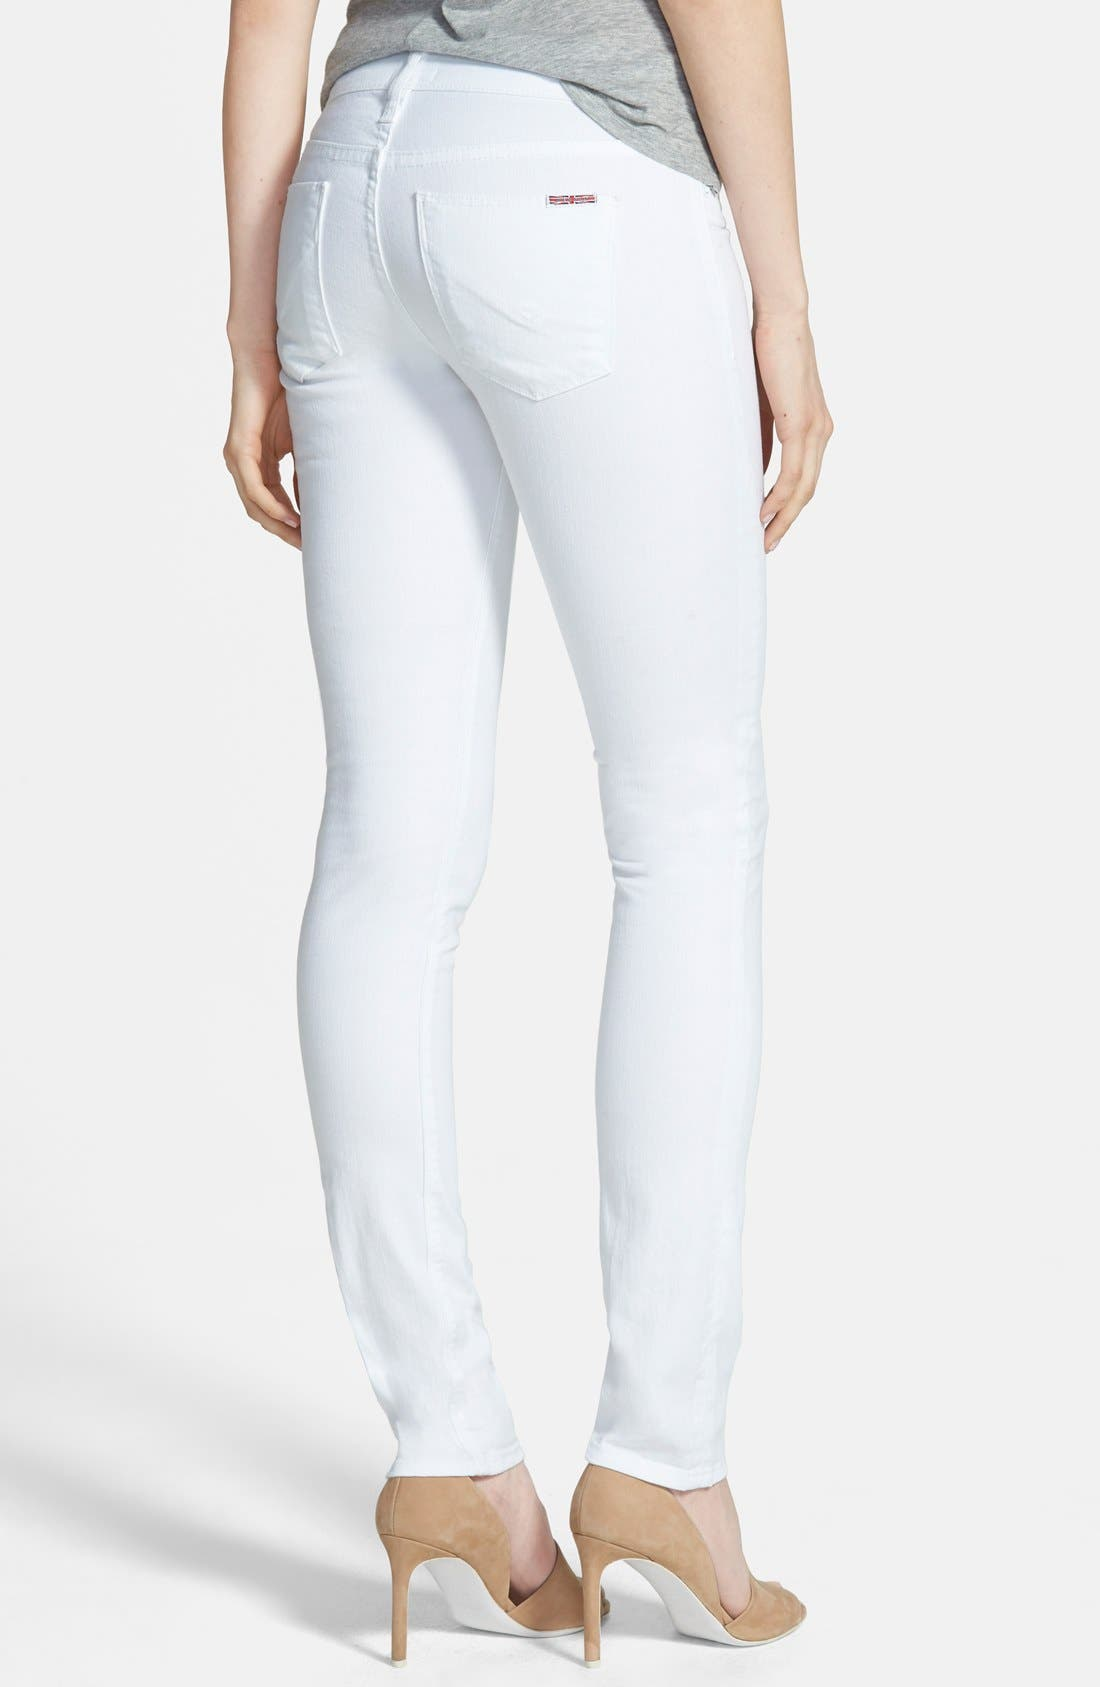 'Shine' Mid Rise Skinny Jeans,                             Alternate thumbnail 3, color,                             100